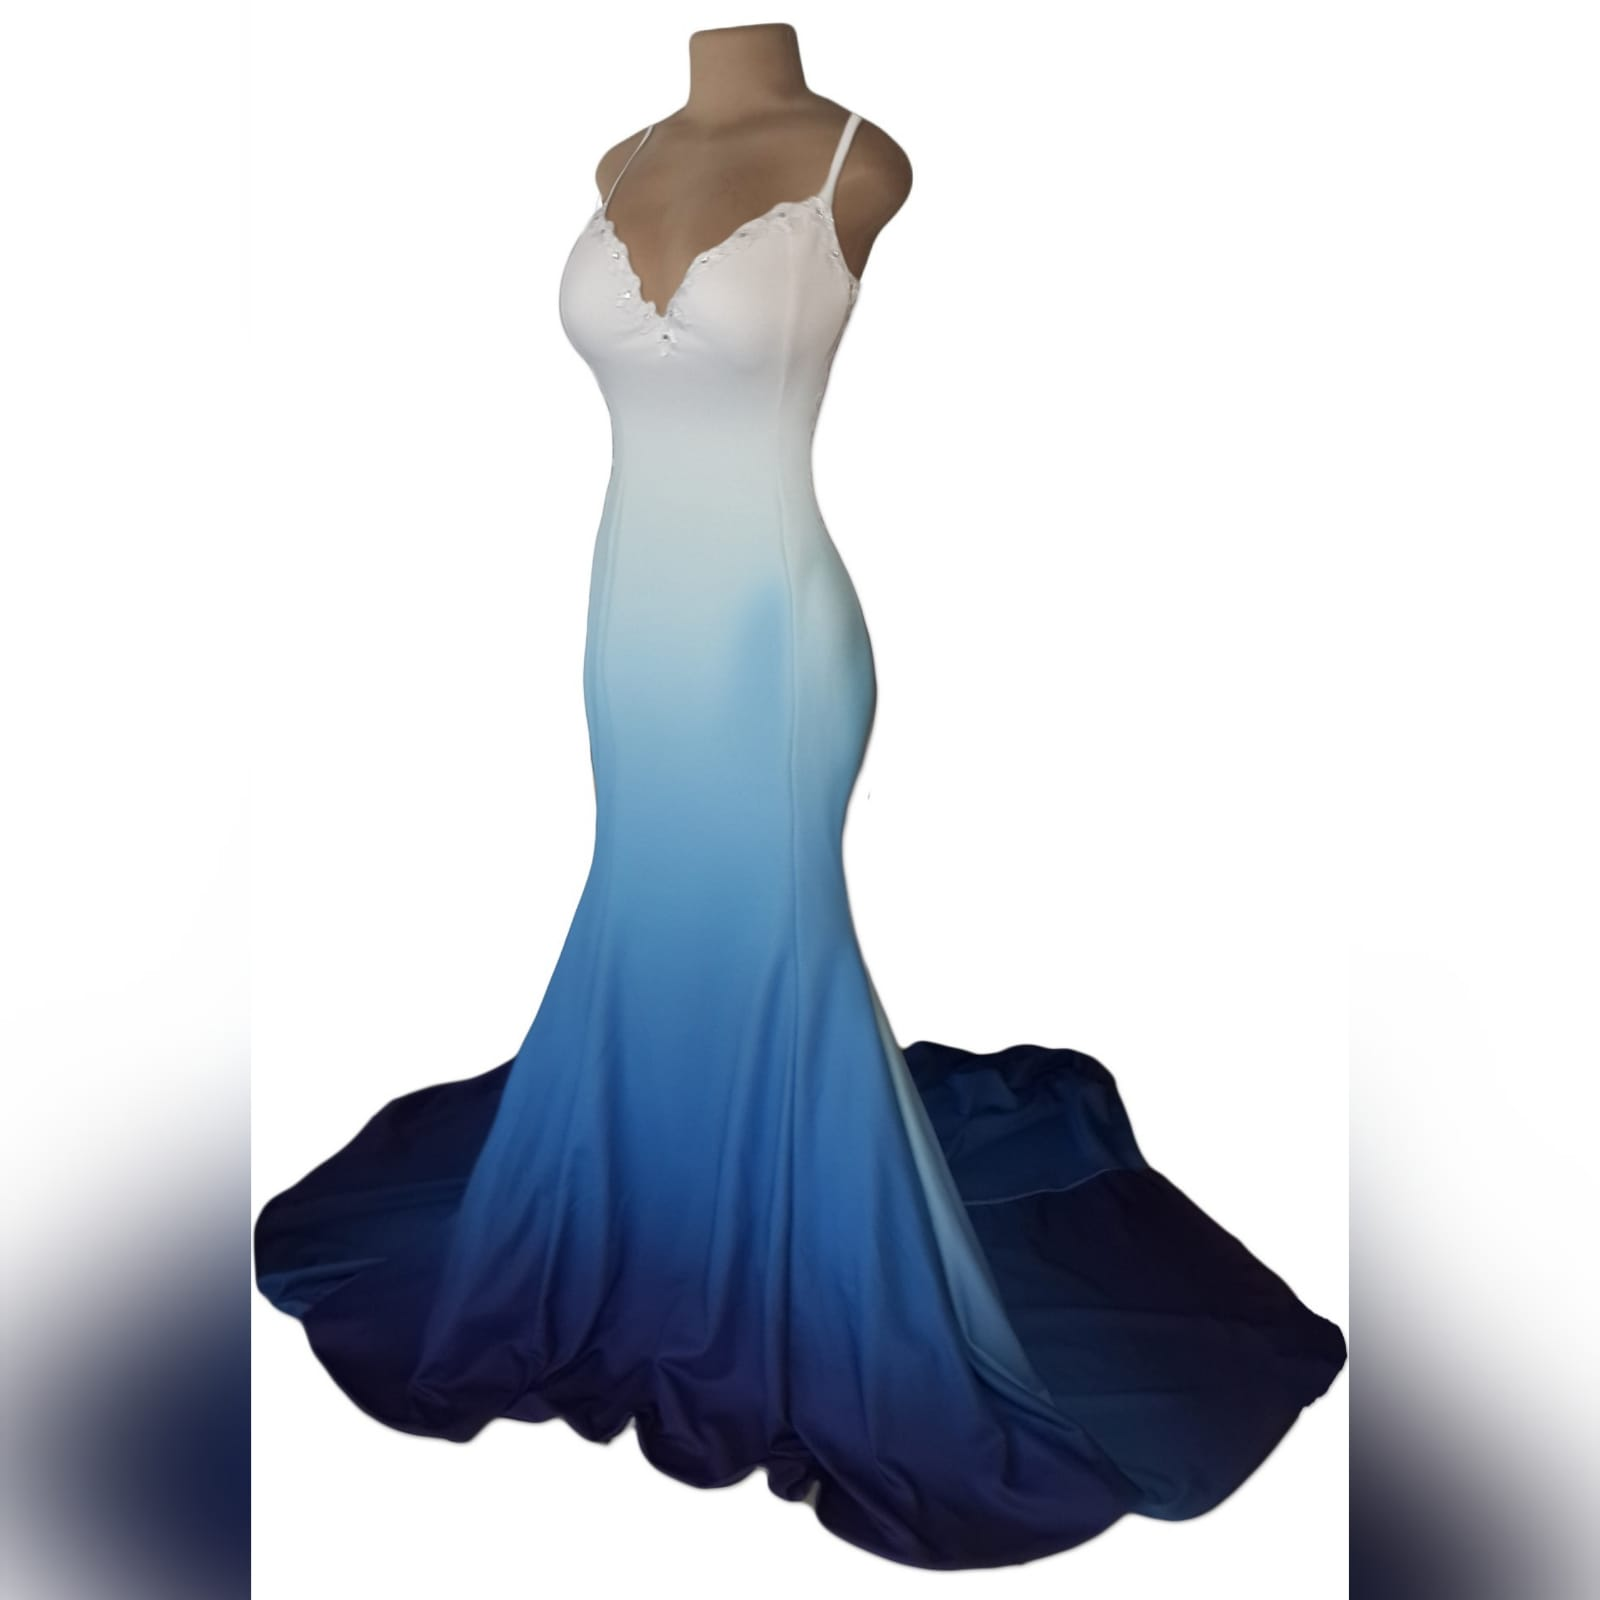 White & blue ombre soft mermaid prom dress with a sheer lace back 6 white & blue ombre soft mermaid prom dress with a sheer lace back. A sweetheart neckline. With a touch of silver beads and a train